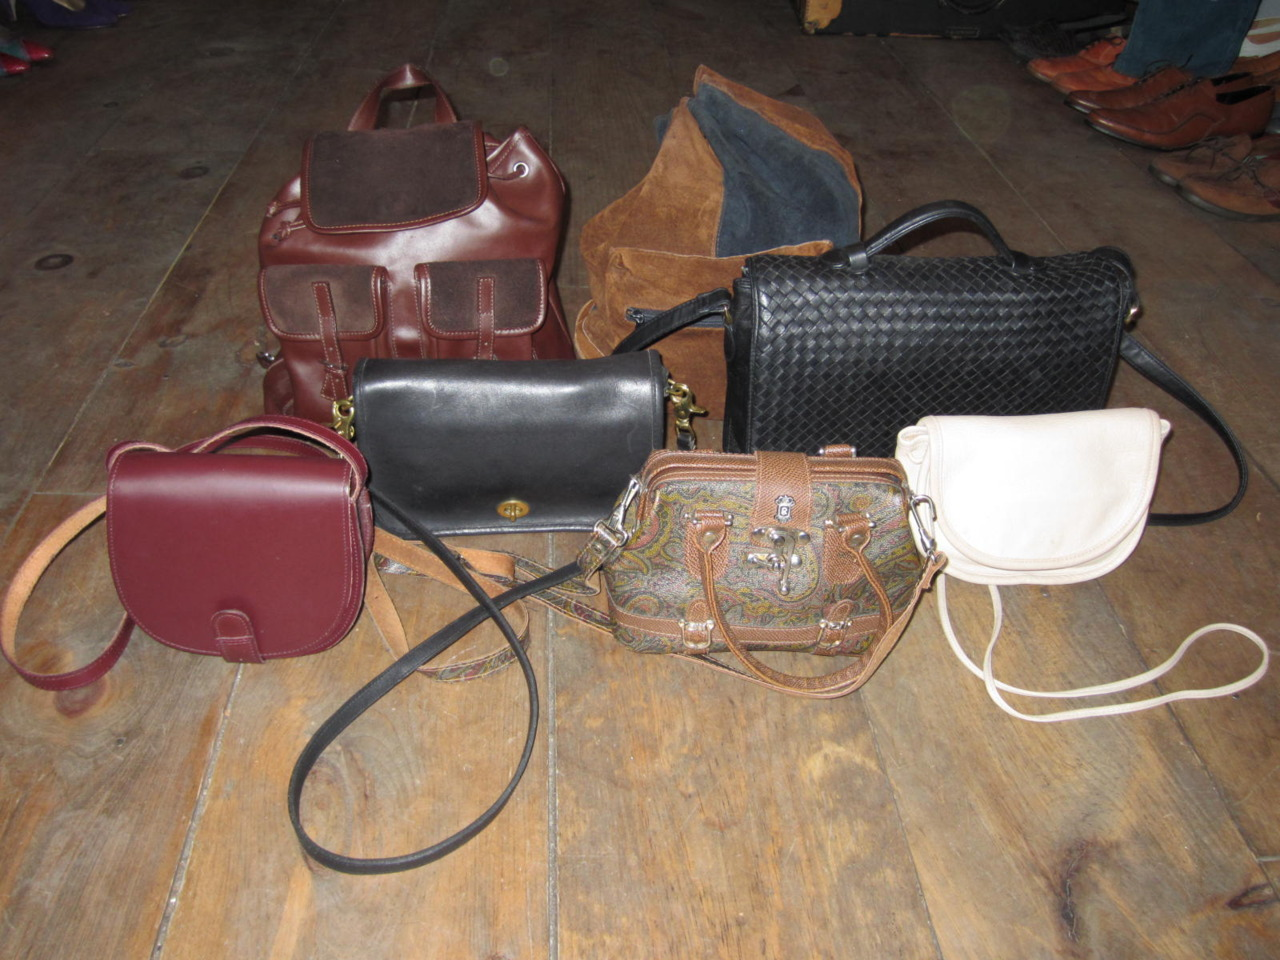 Check out these new Vintage treasures-These make some great X-mas gifts if you ask us-All under $100!